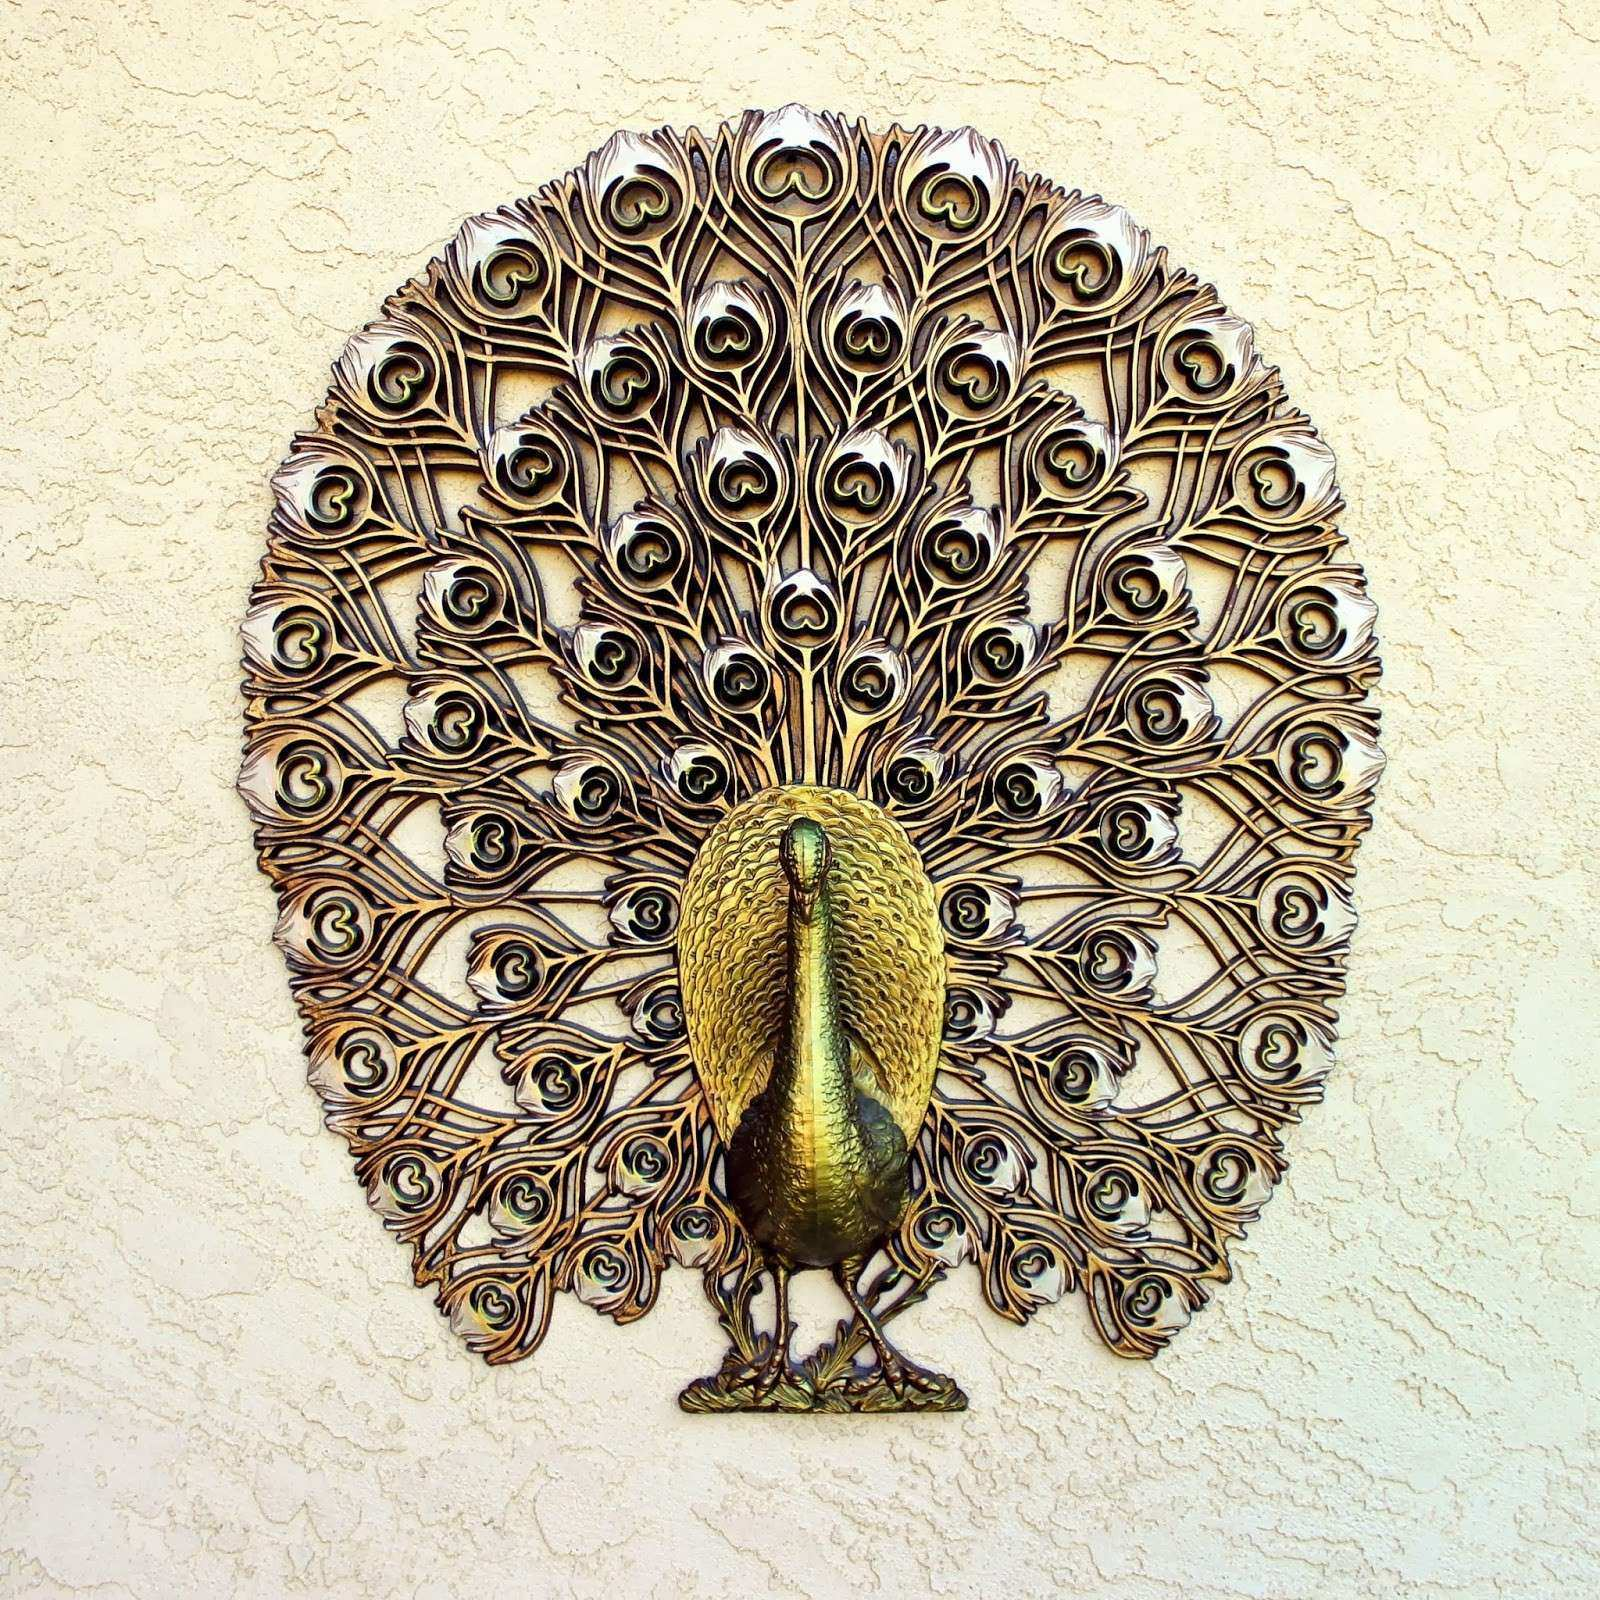 Beautiful Peacock Wall Art Inspirational Vintage Finds Peacock Wall Decor